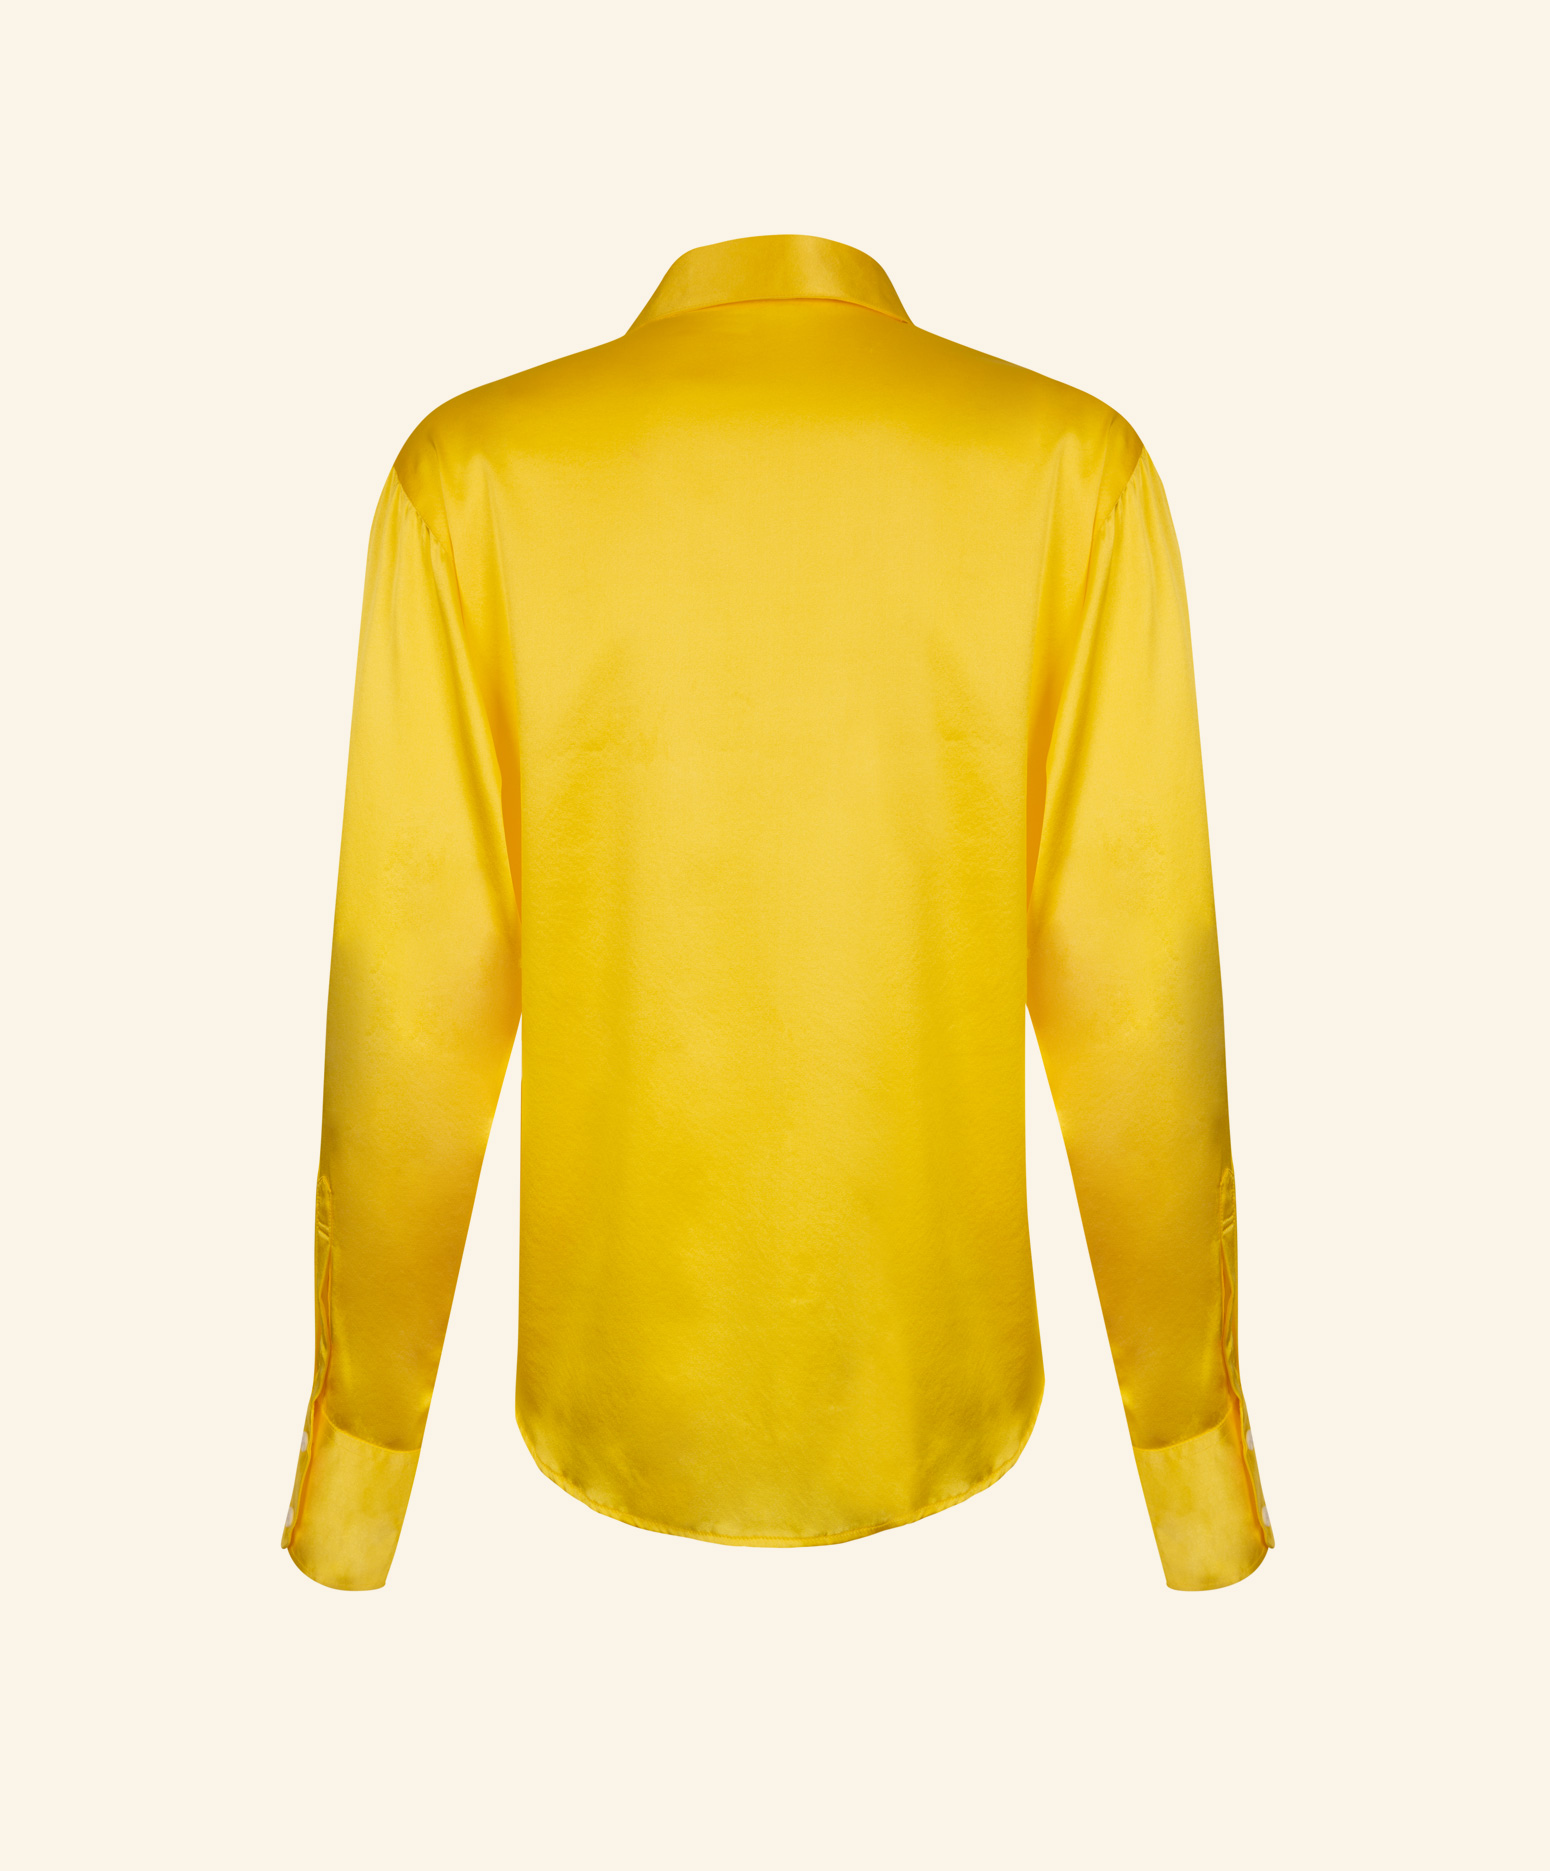 https://www.sannelondon.com/wp-content/uploads/2019/07/lemon-silk-back.jpg